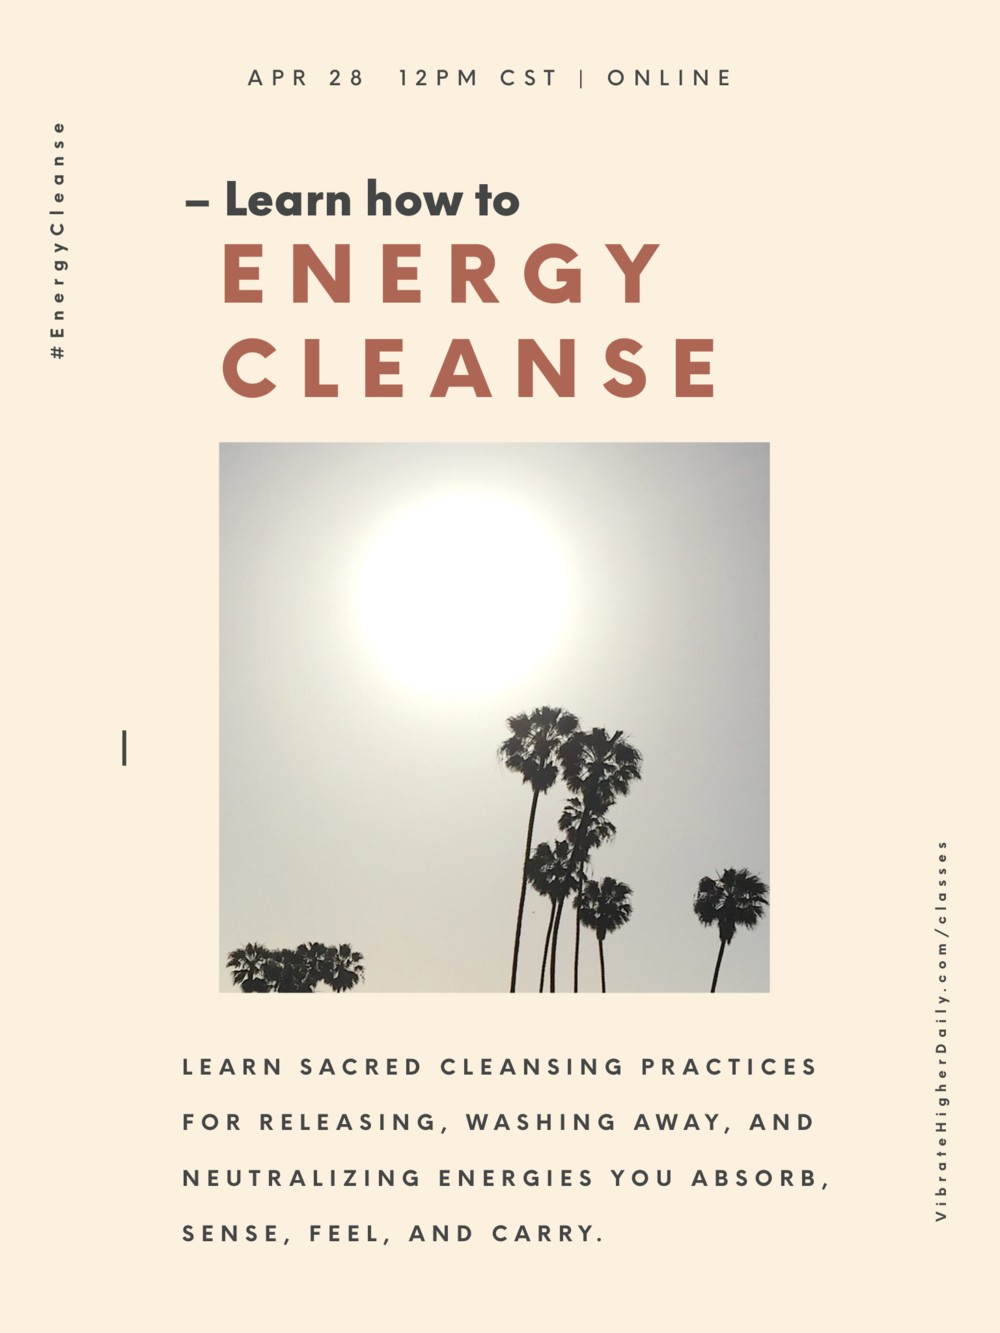 Energy Cleanse   $15 - Learn sacred energetic cleansing practices for releasing and neutralizing energies you absorb, sense, feel, and carry.